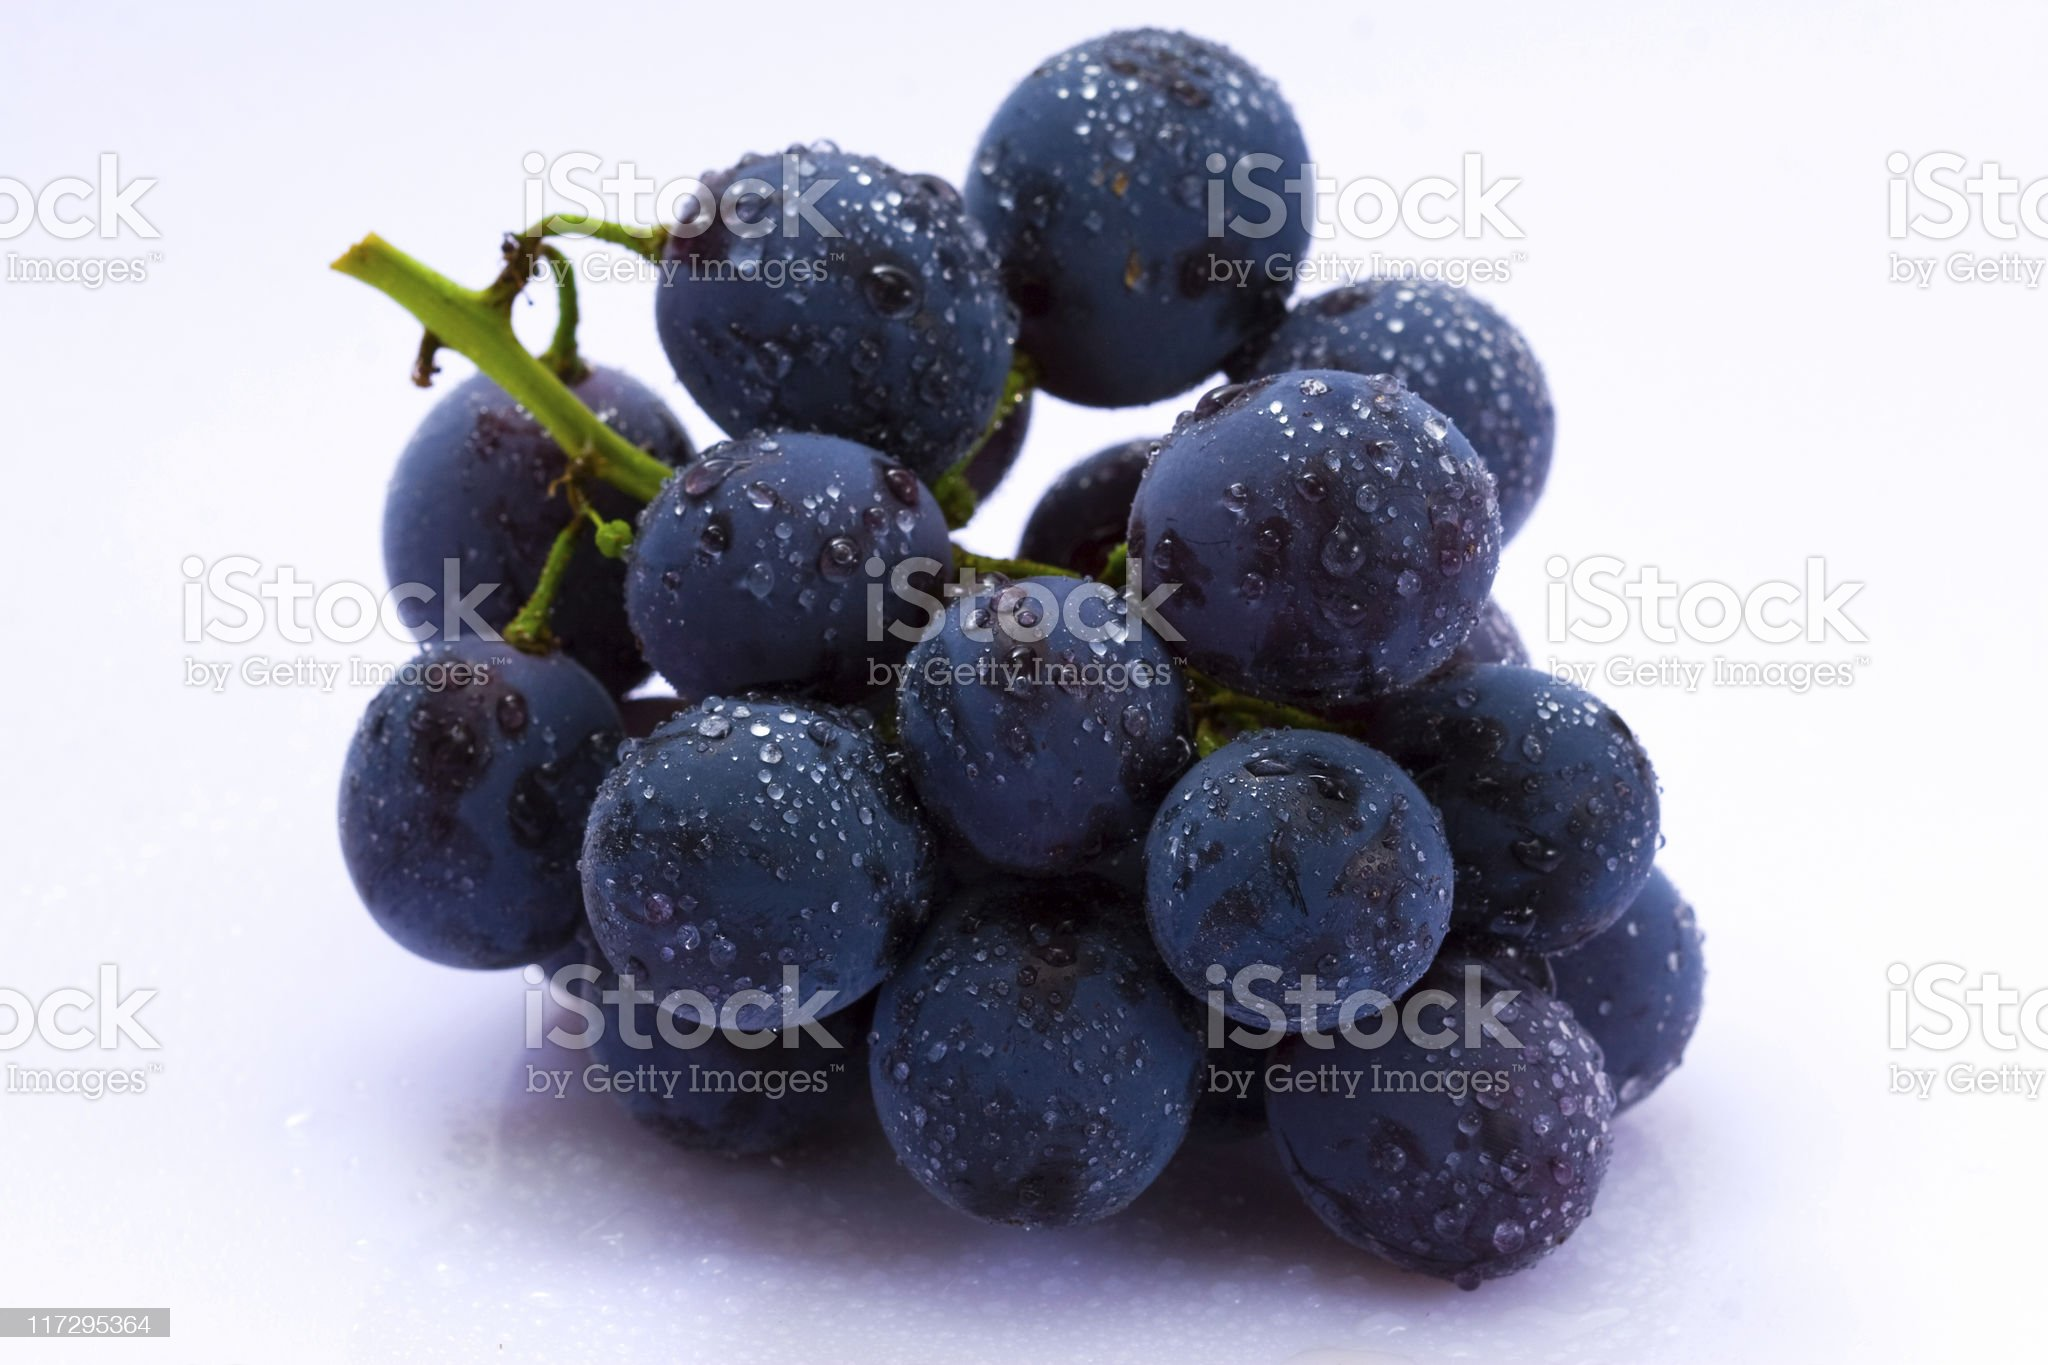 Grape cluster royalty-free stock photo